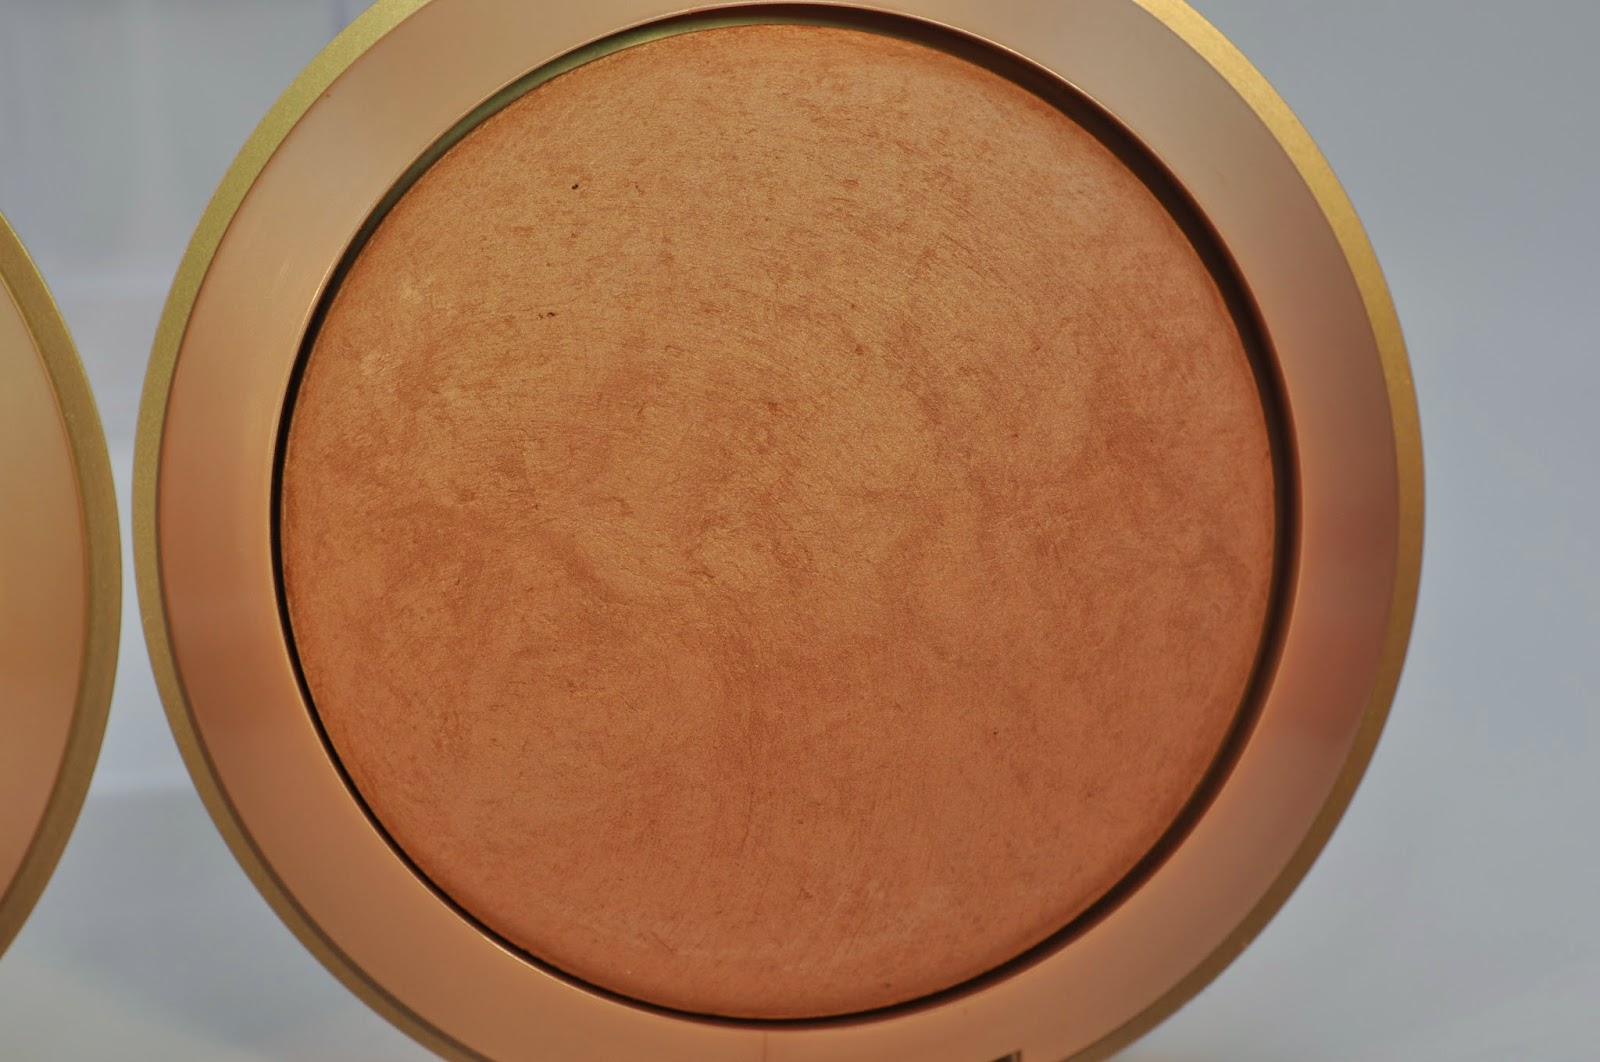 Milani Baked Bronzer in 08 Sunset